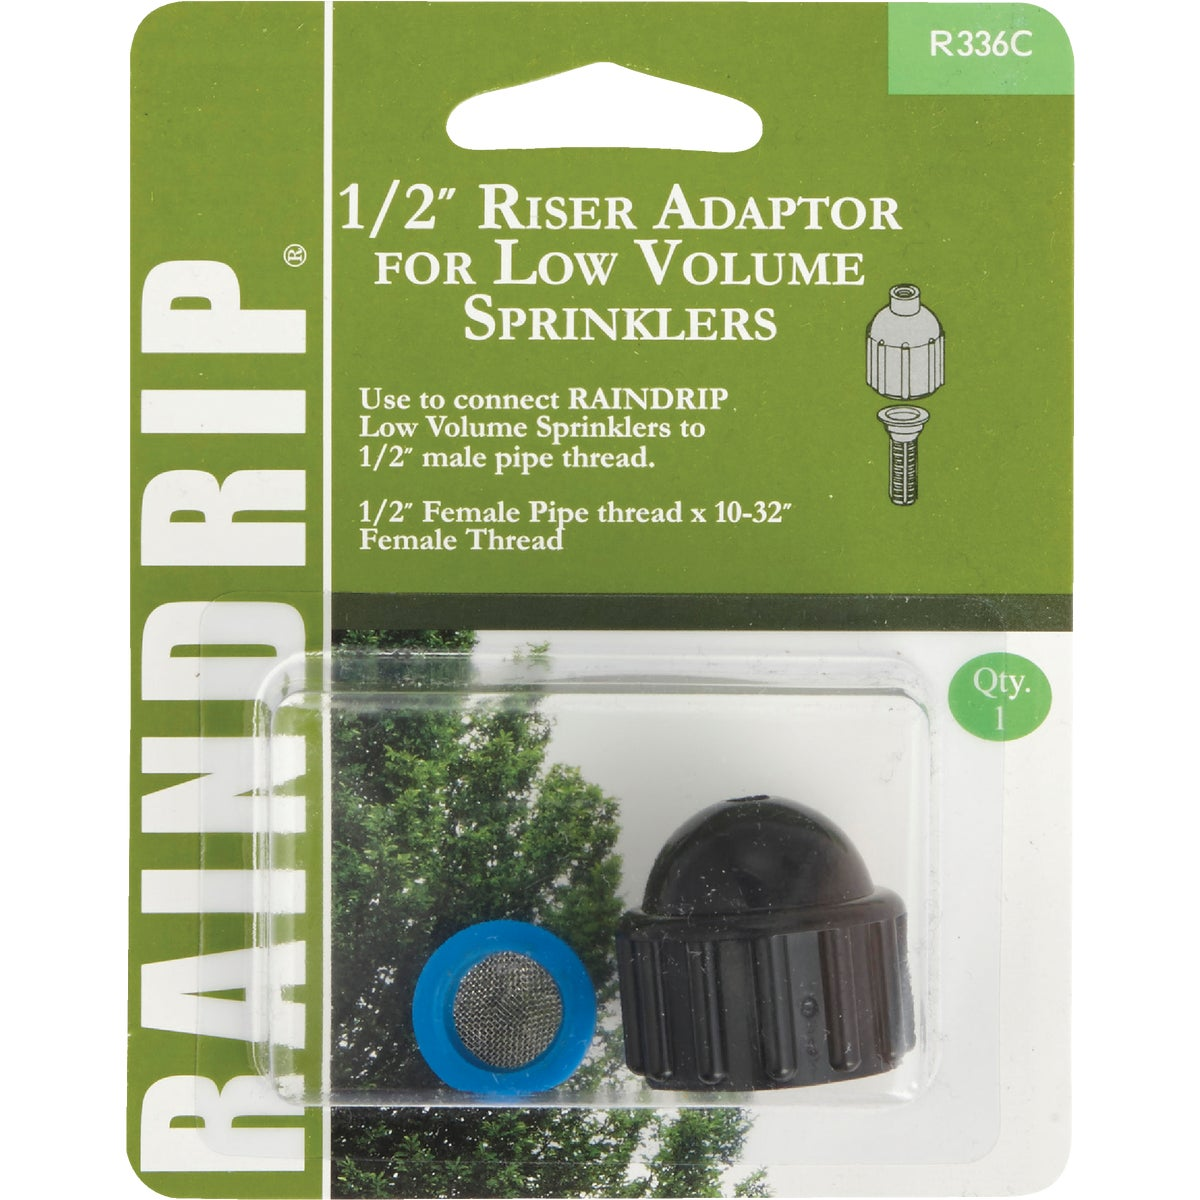 1/2RSR SPRINKLER ADAPTOR - R336CT by Raindrip Inc